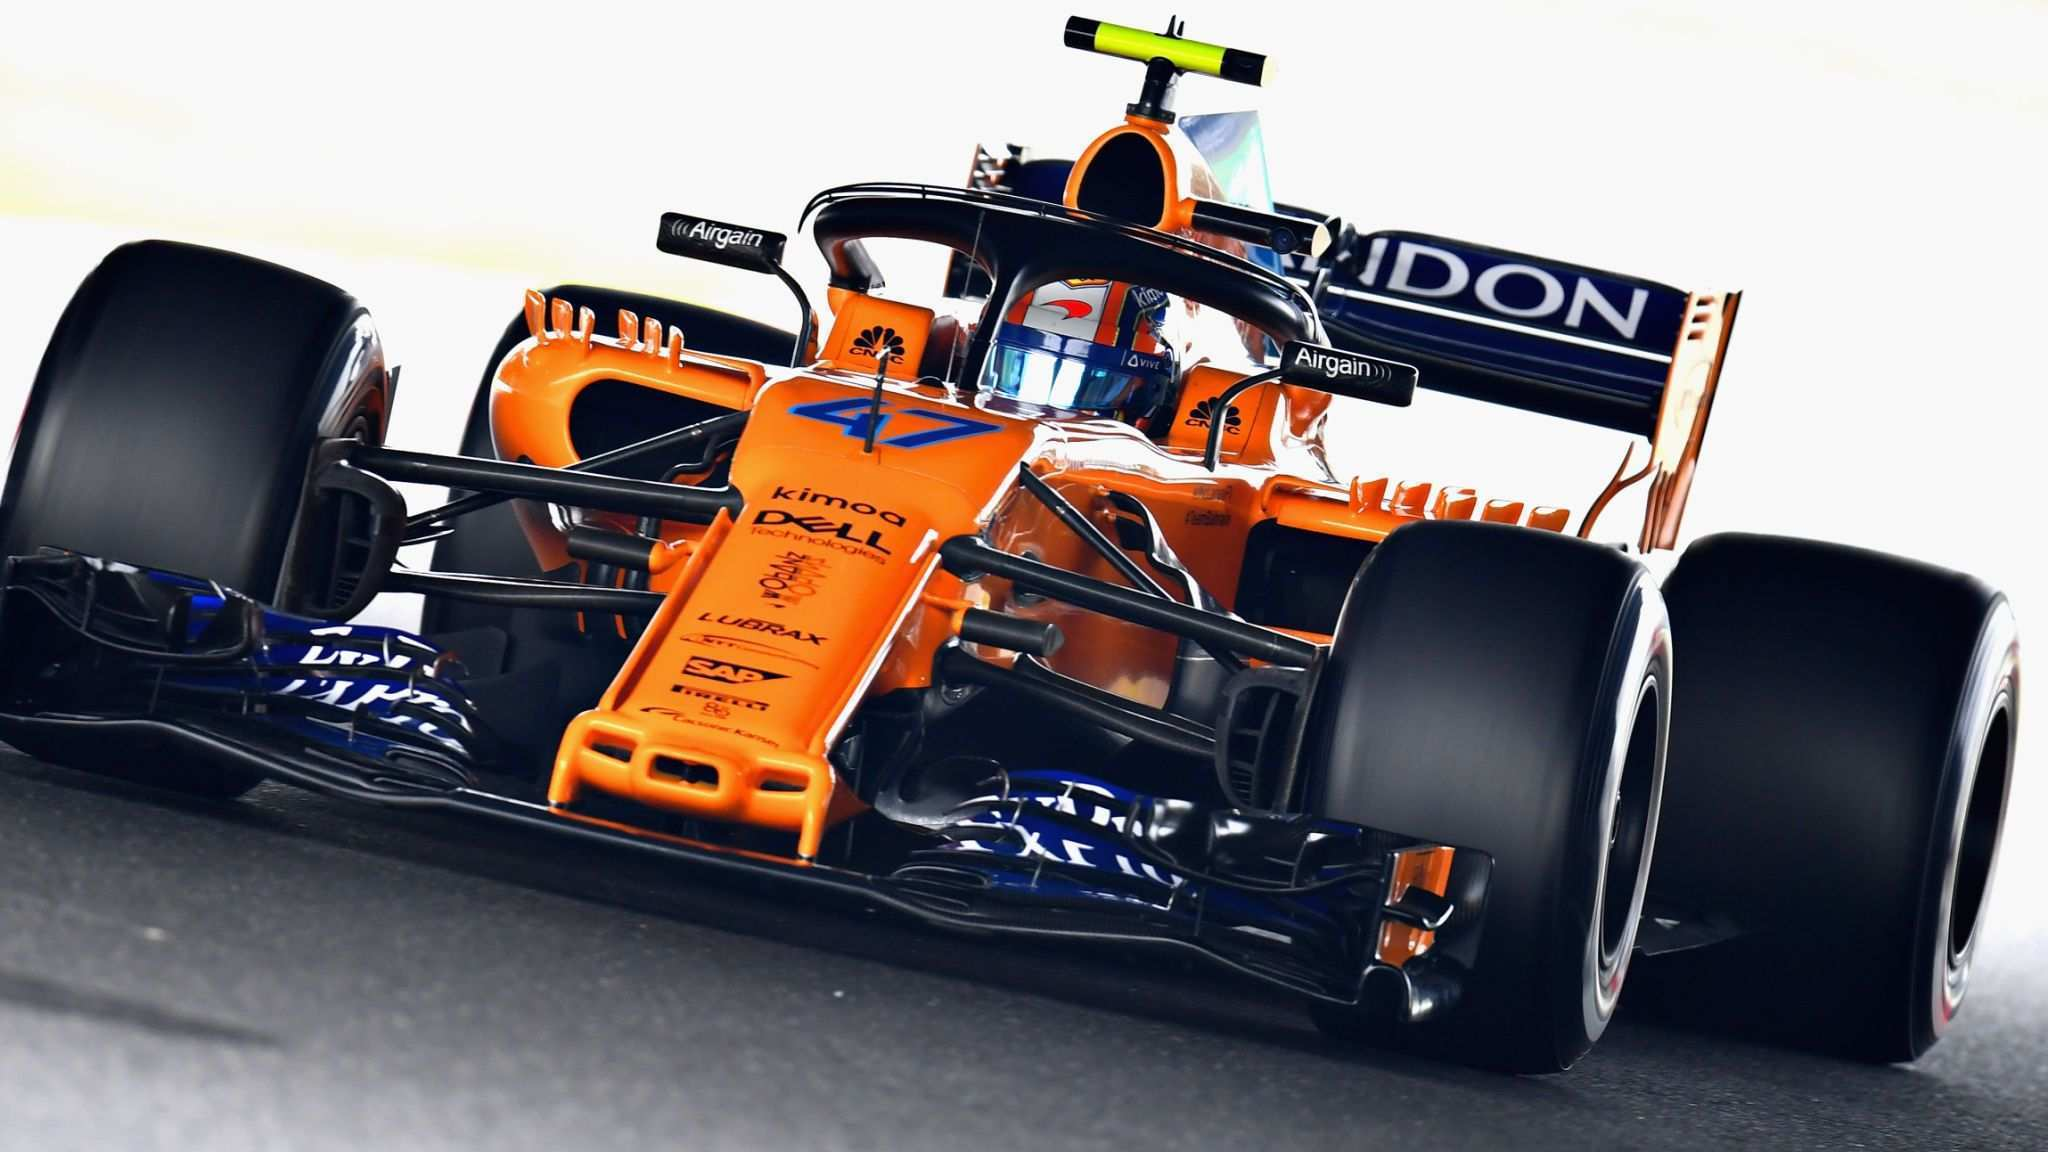 64 The Best 2019 Mclaren F1 Overview